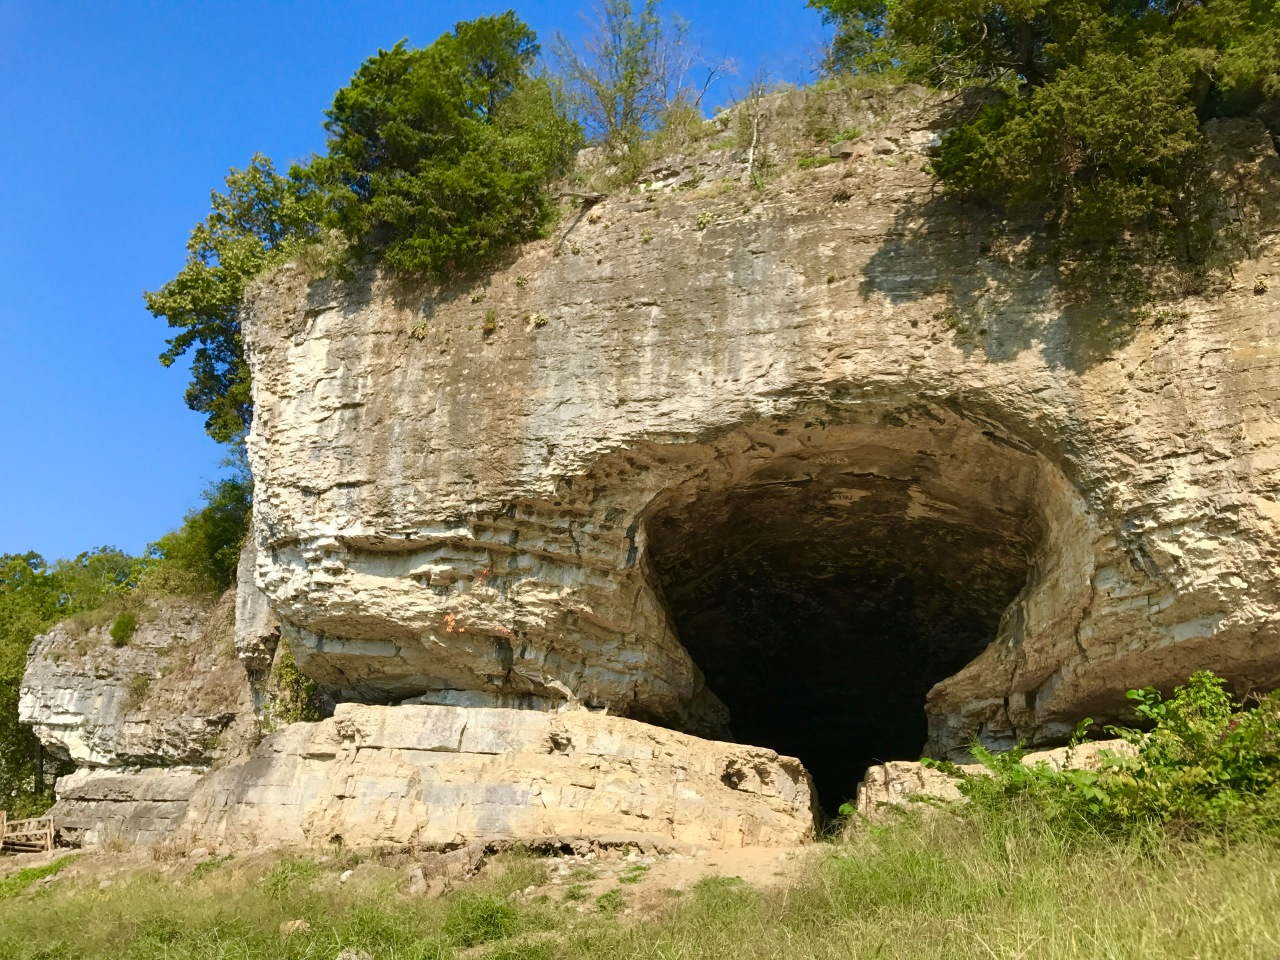 Cave-In-Rock State Park – Illinois